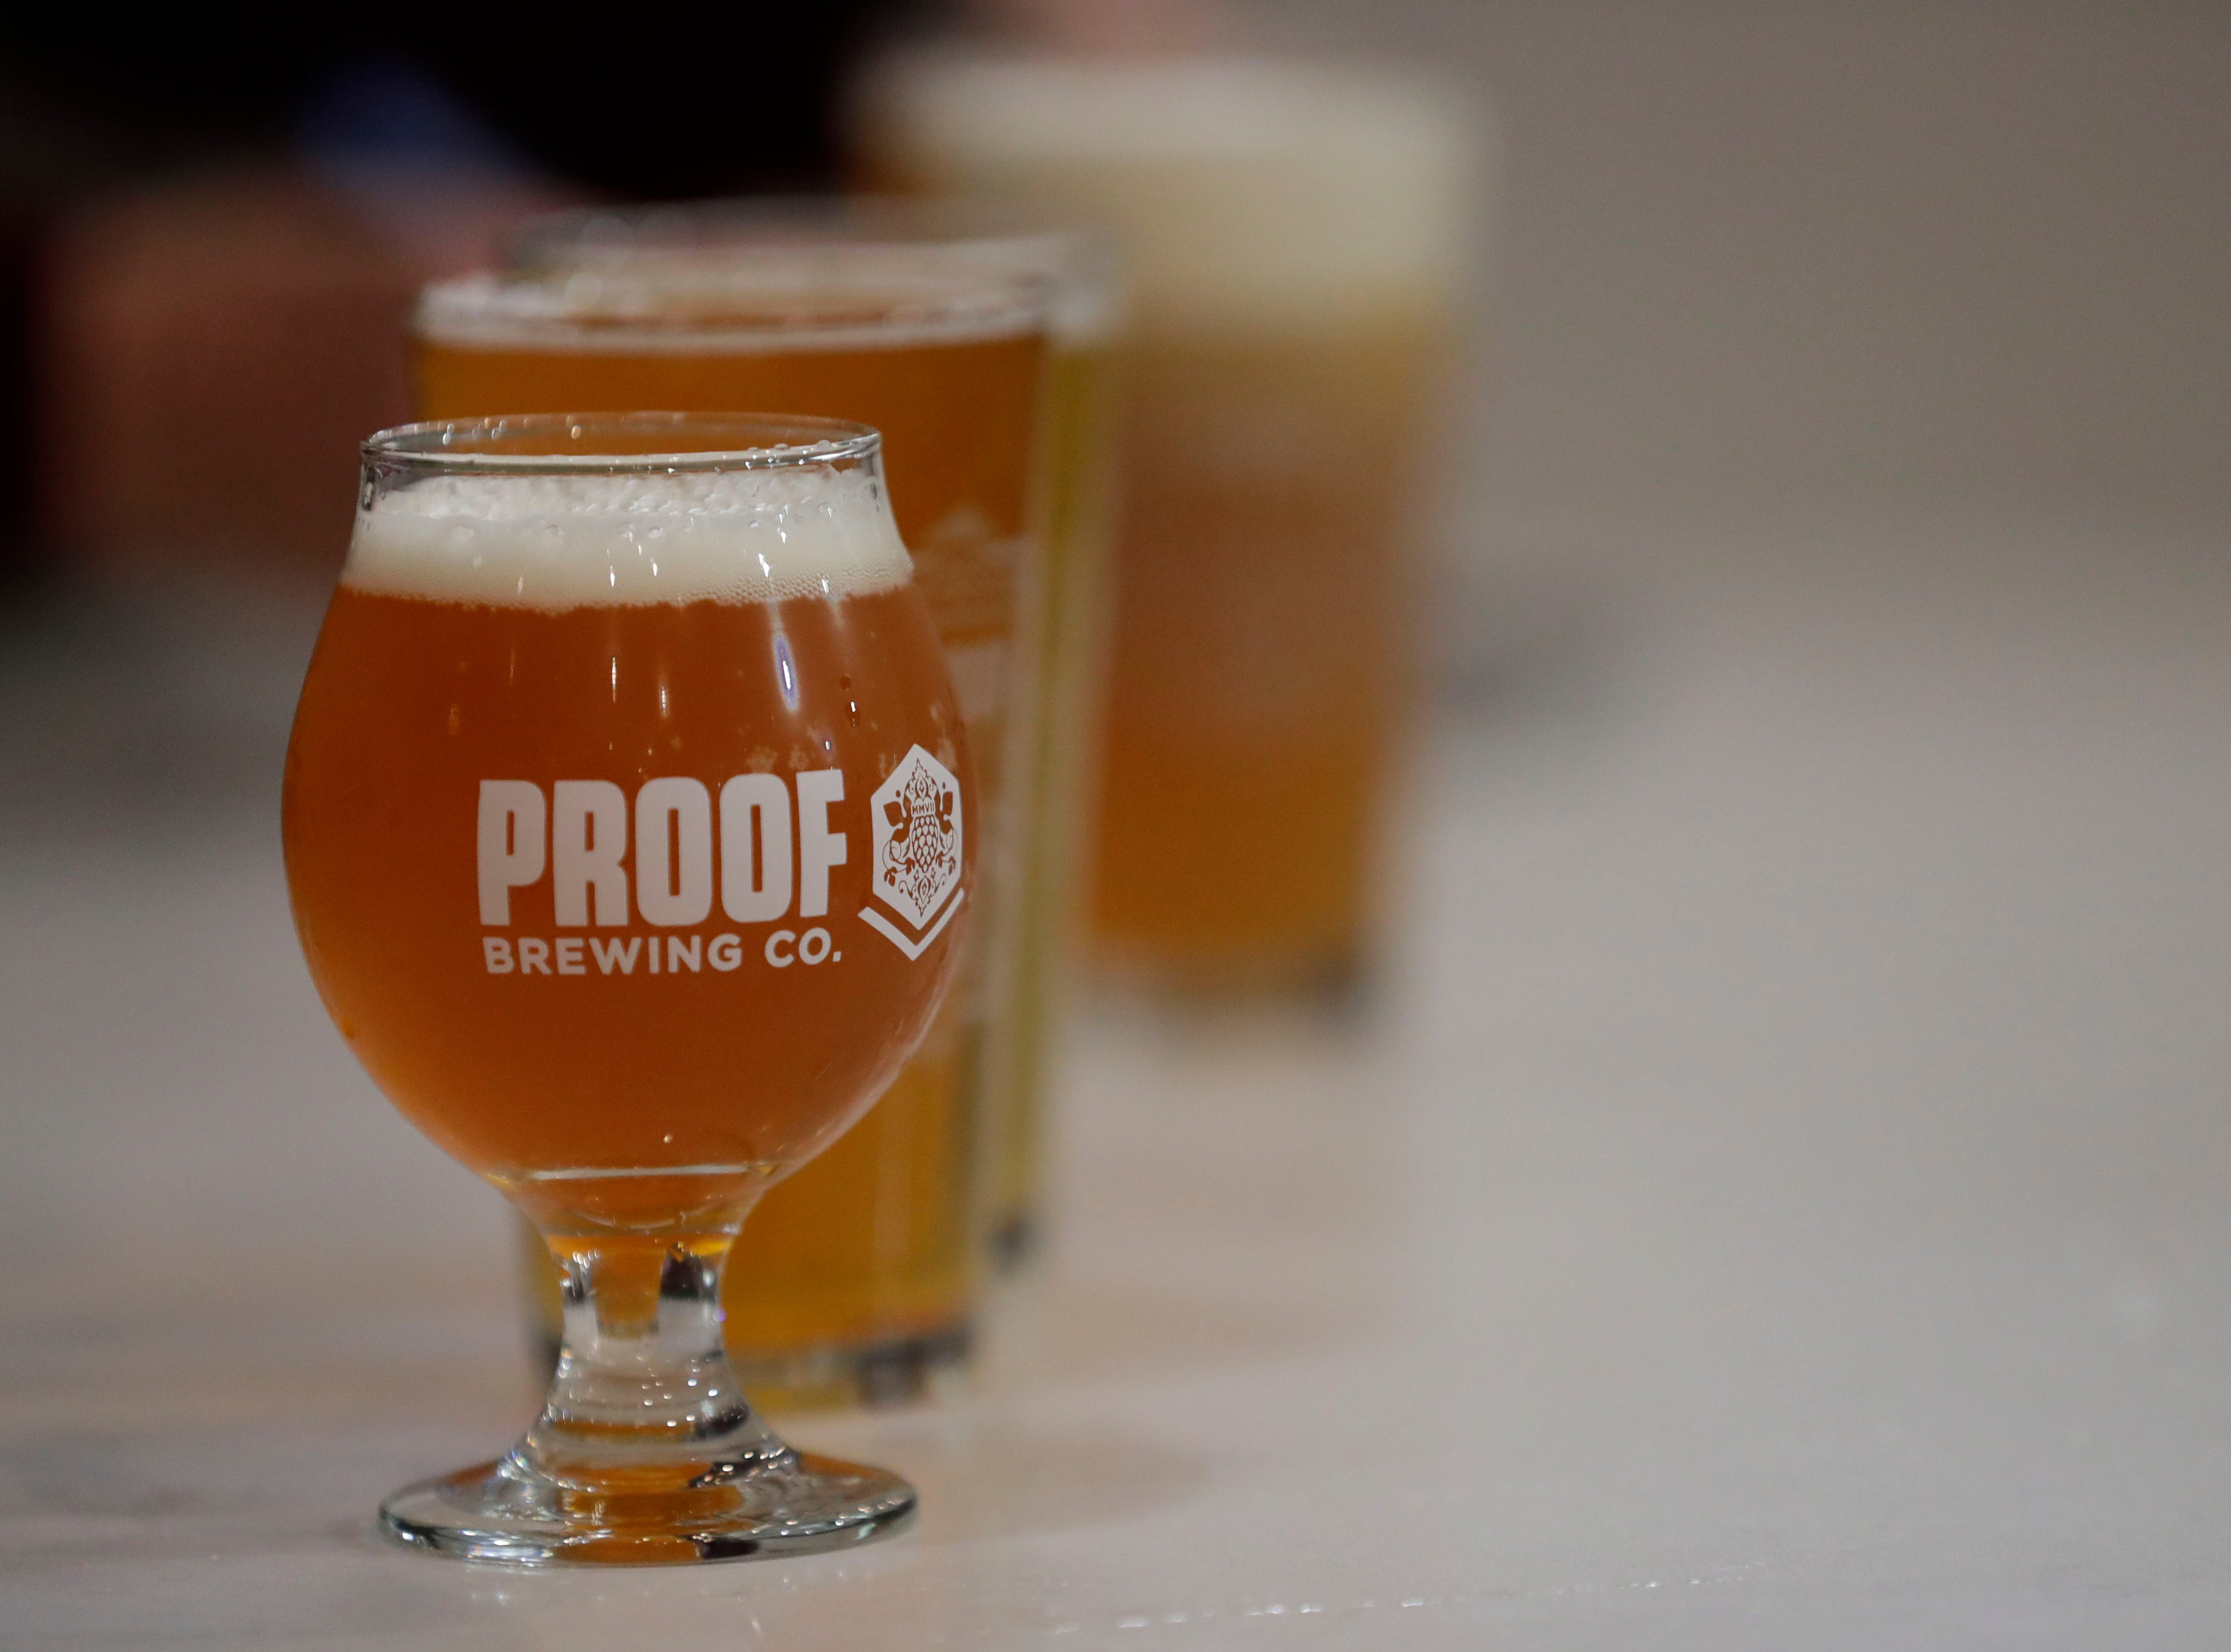 Freshly poured beers sit on the bar the new Proof Brewery during their soft opening, Friday, Feb. 1, 2019.